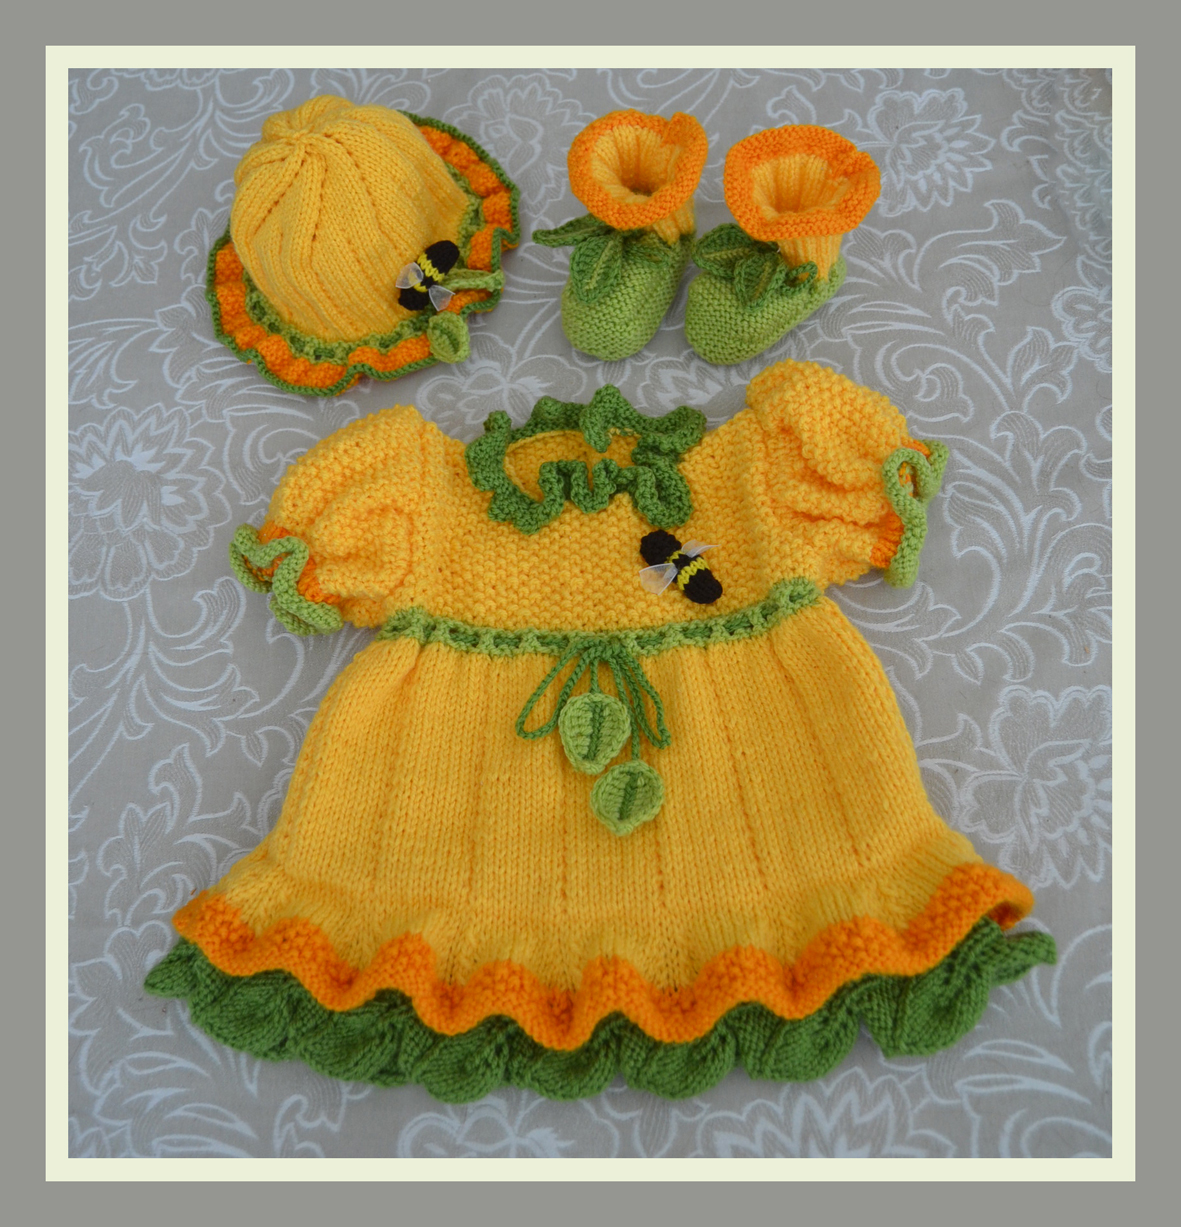 daffodil dress main logoSML